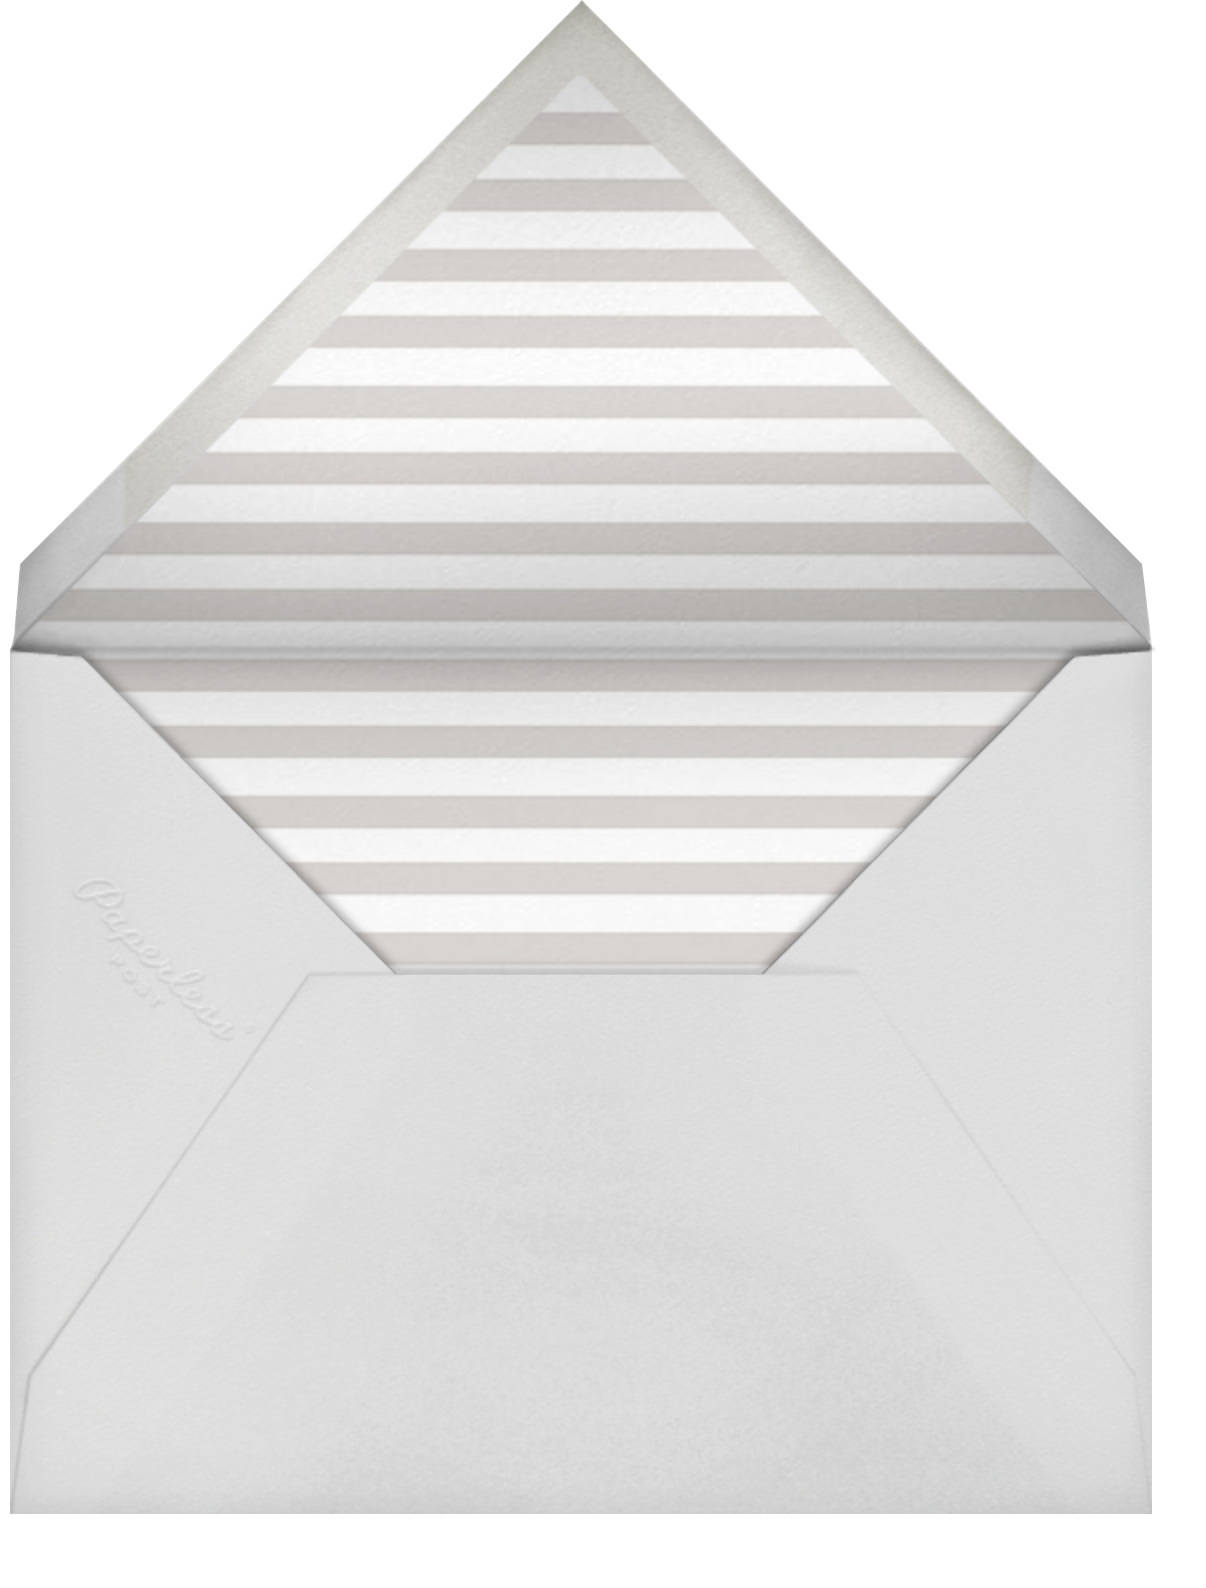 Square Frame - Tall (Gray) - Paperless Post - Memorial service - envelope back